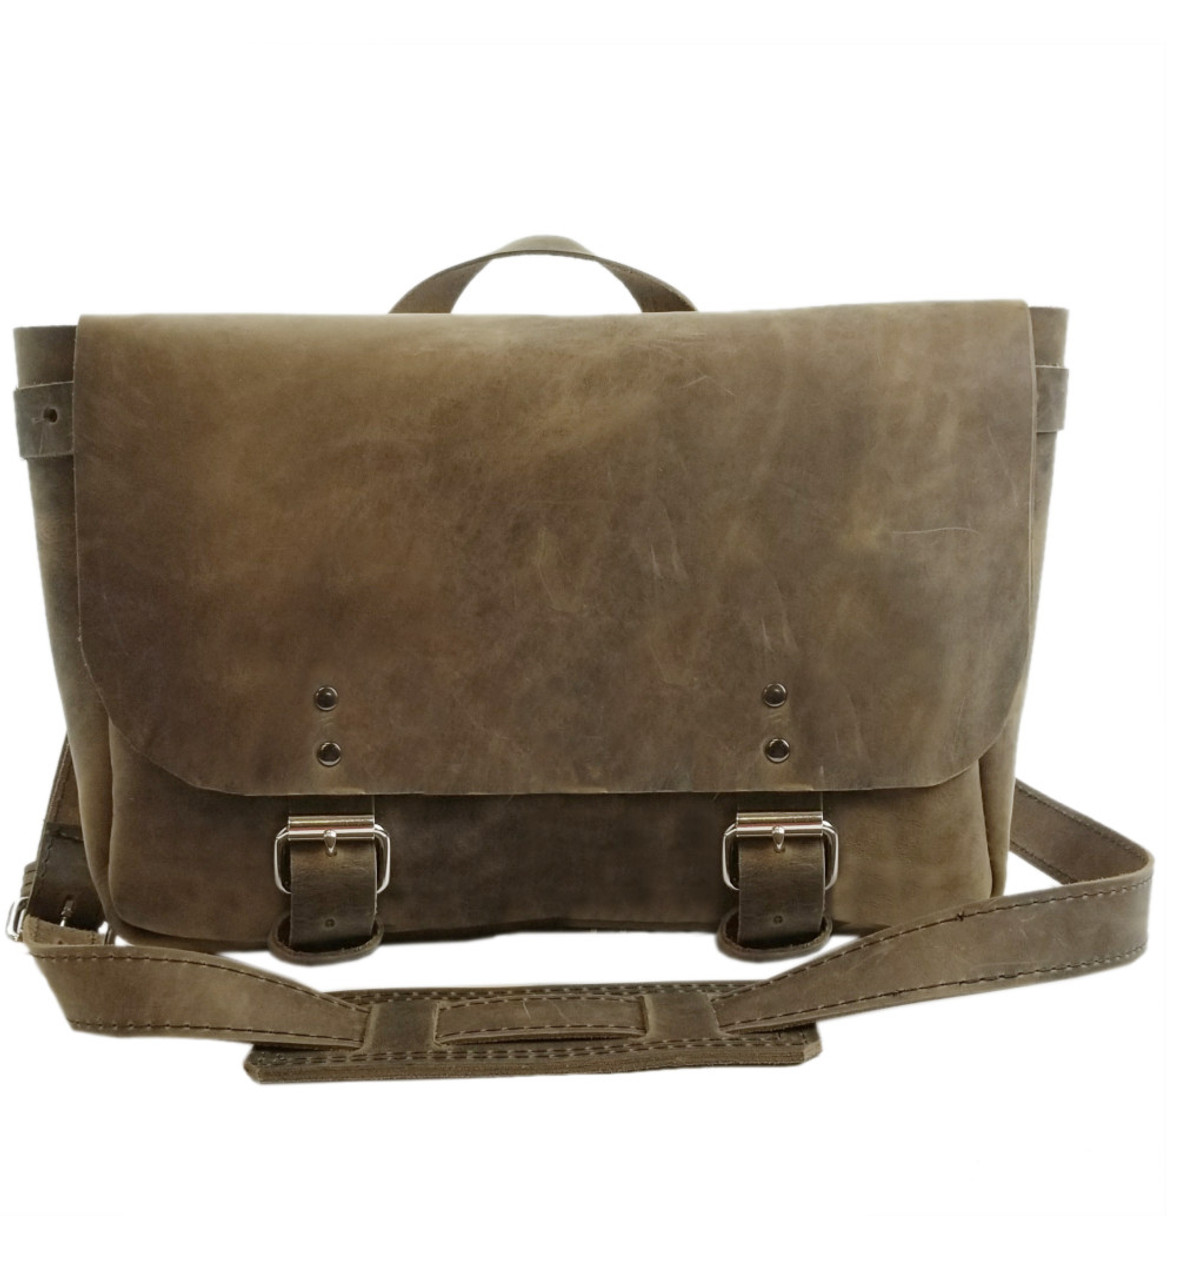 Wonderful American Made Camera Bags, Briefcases U0026 Leather Accessories ...